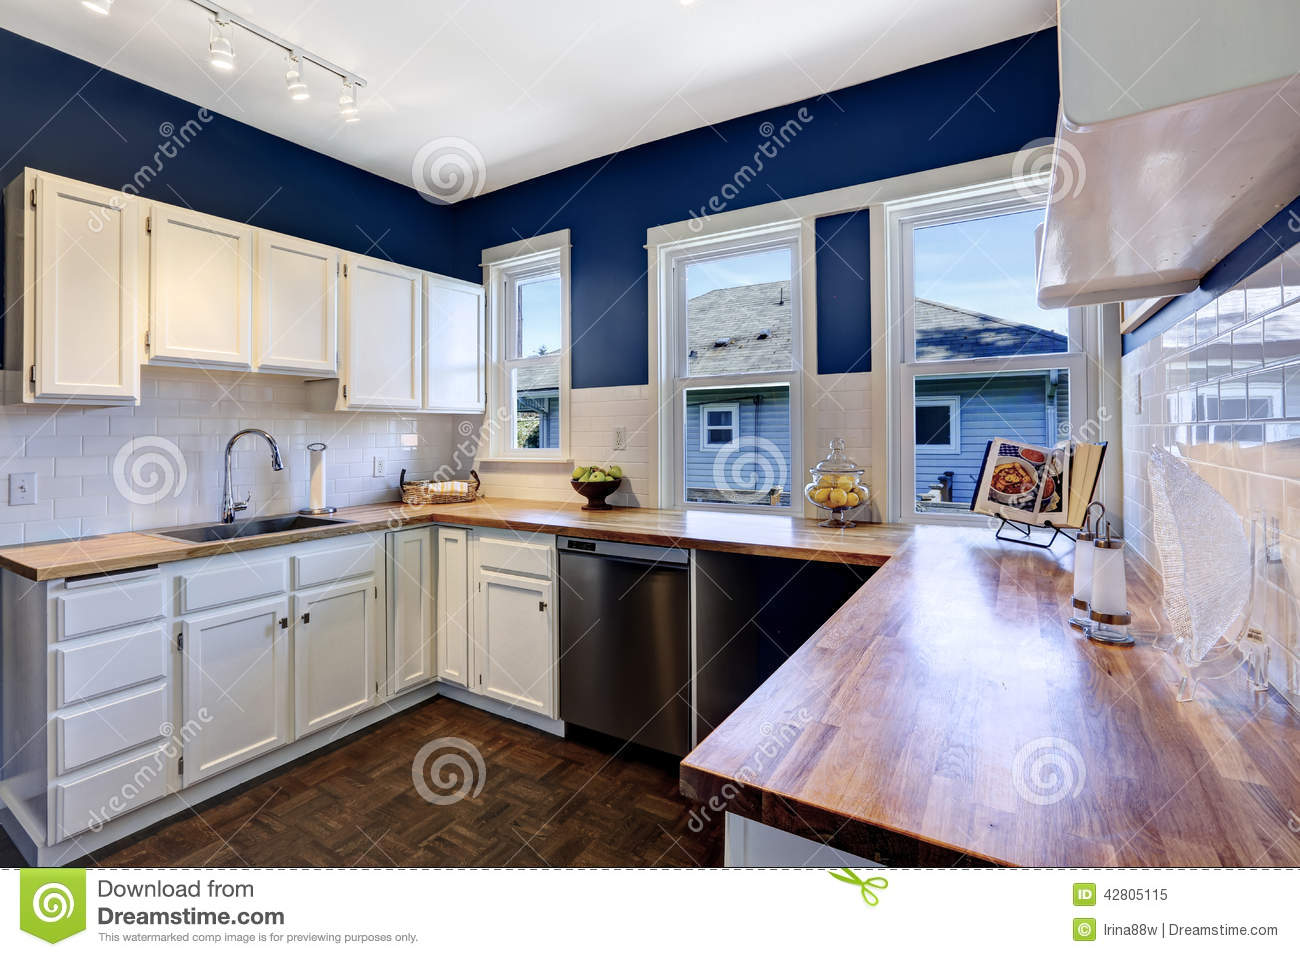 Kitchen Interior In Bright Navy And White Colors Stock